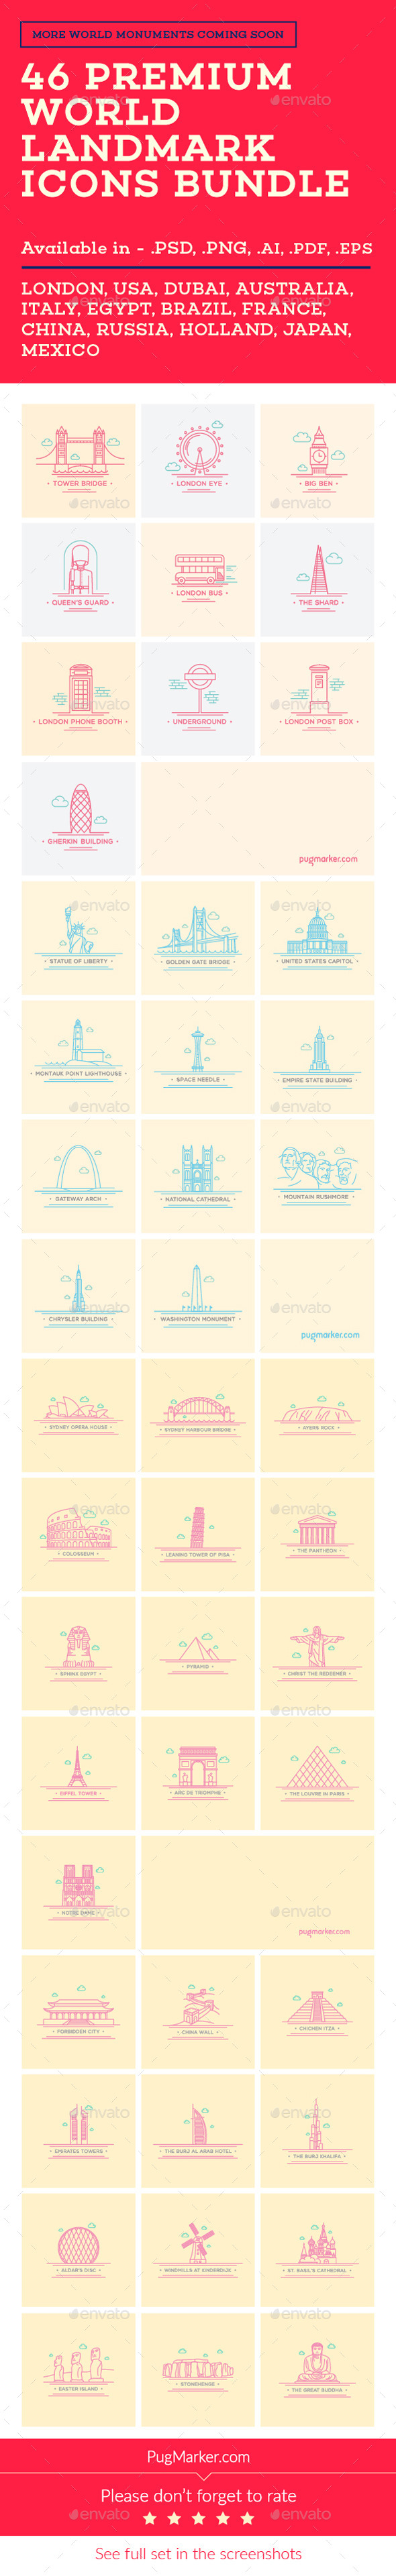 GraphicRiver World Landmark Icons Bundle Vol 1 2 3 4 10869022